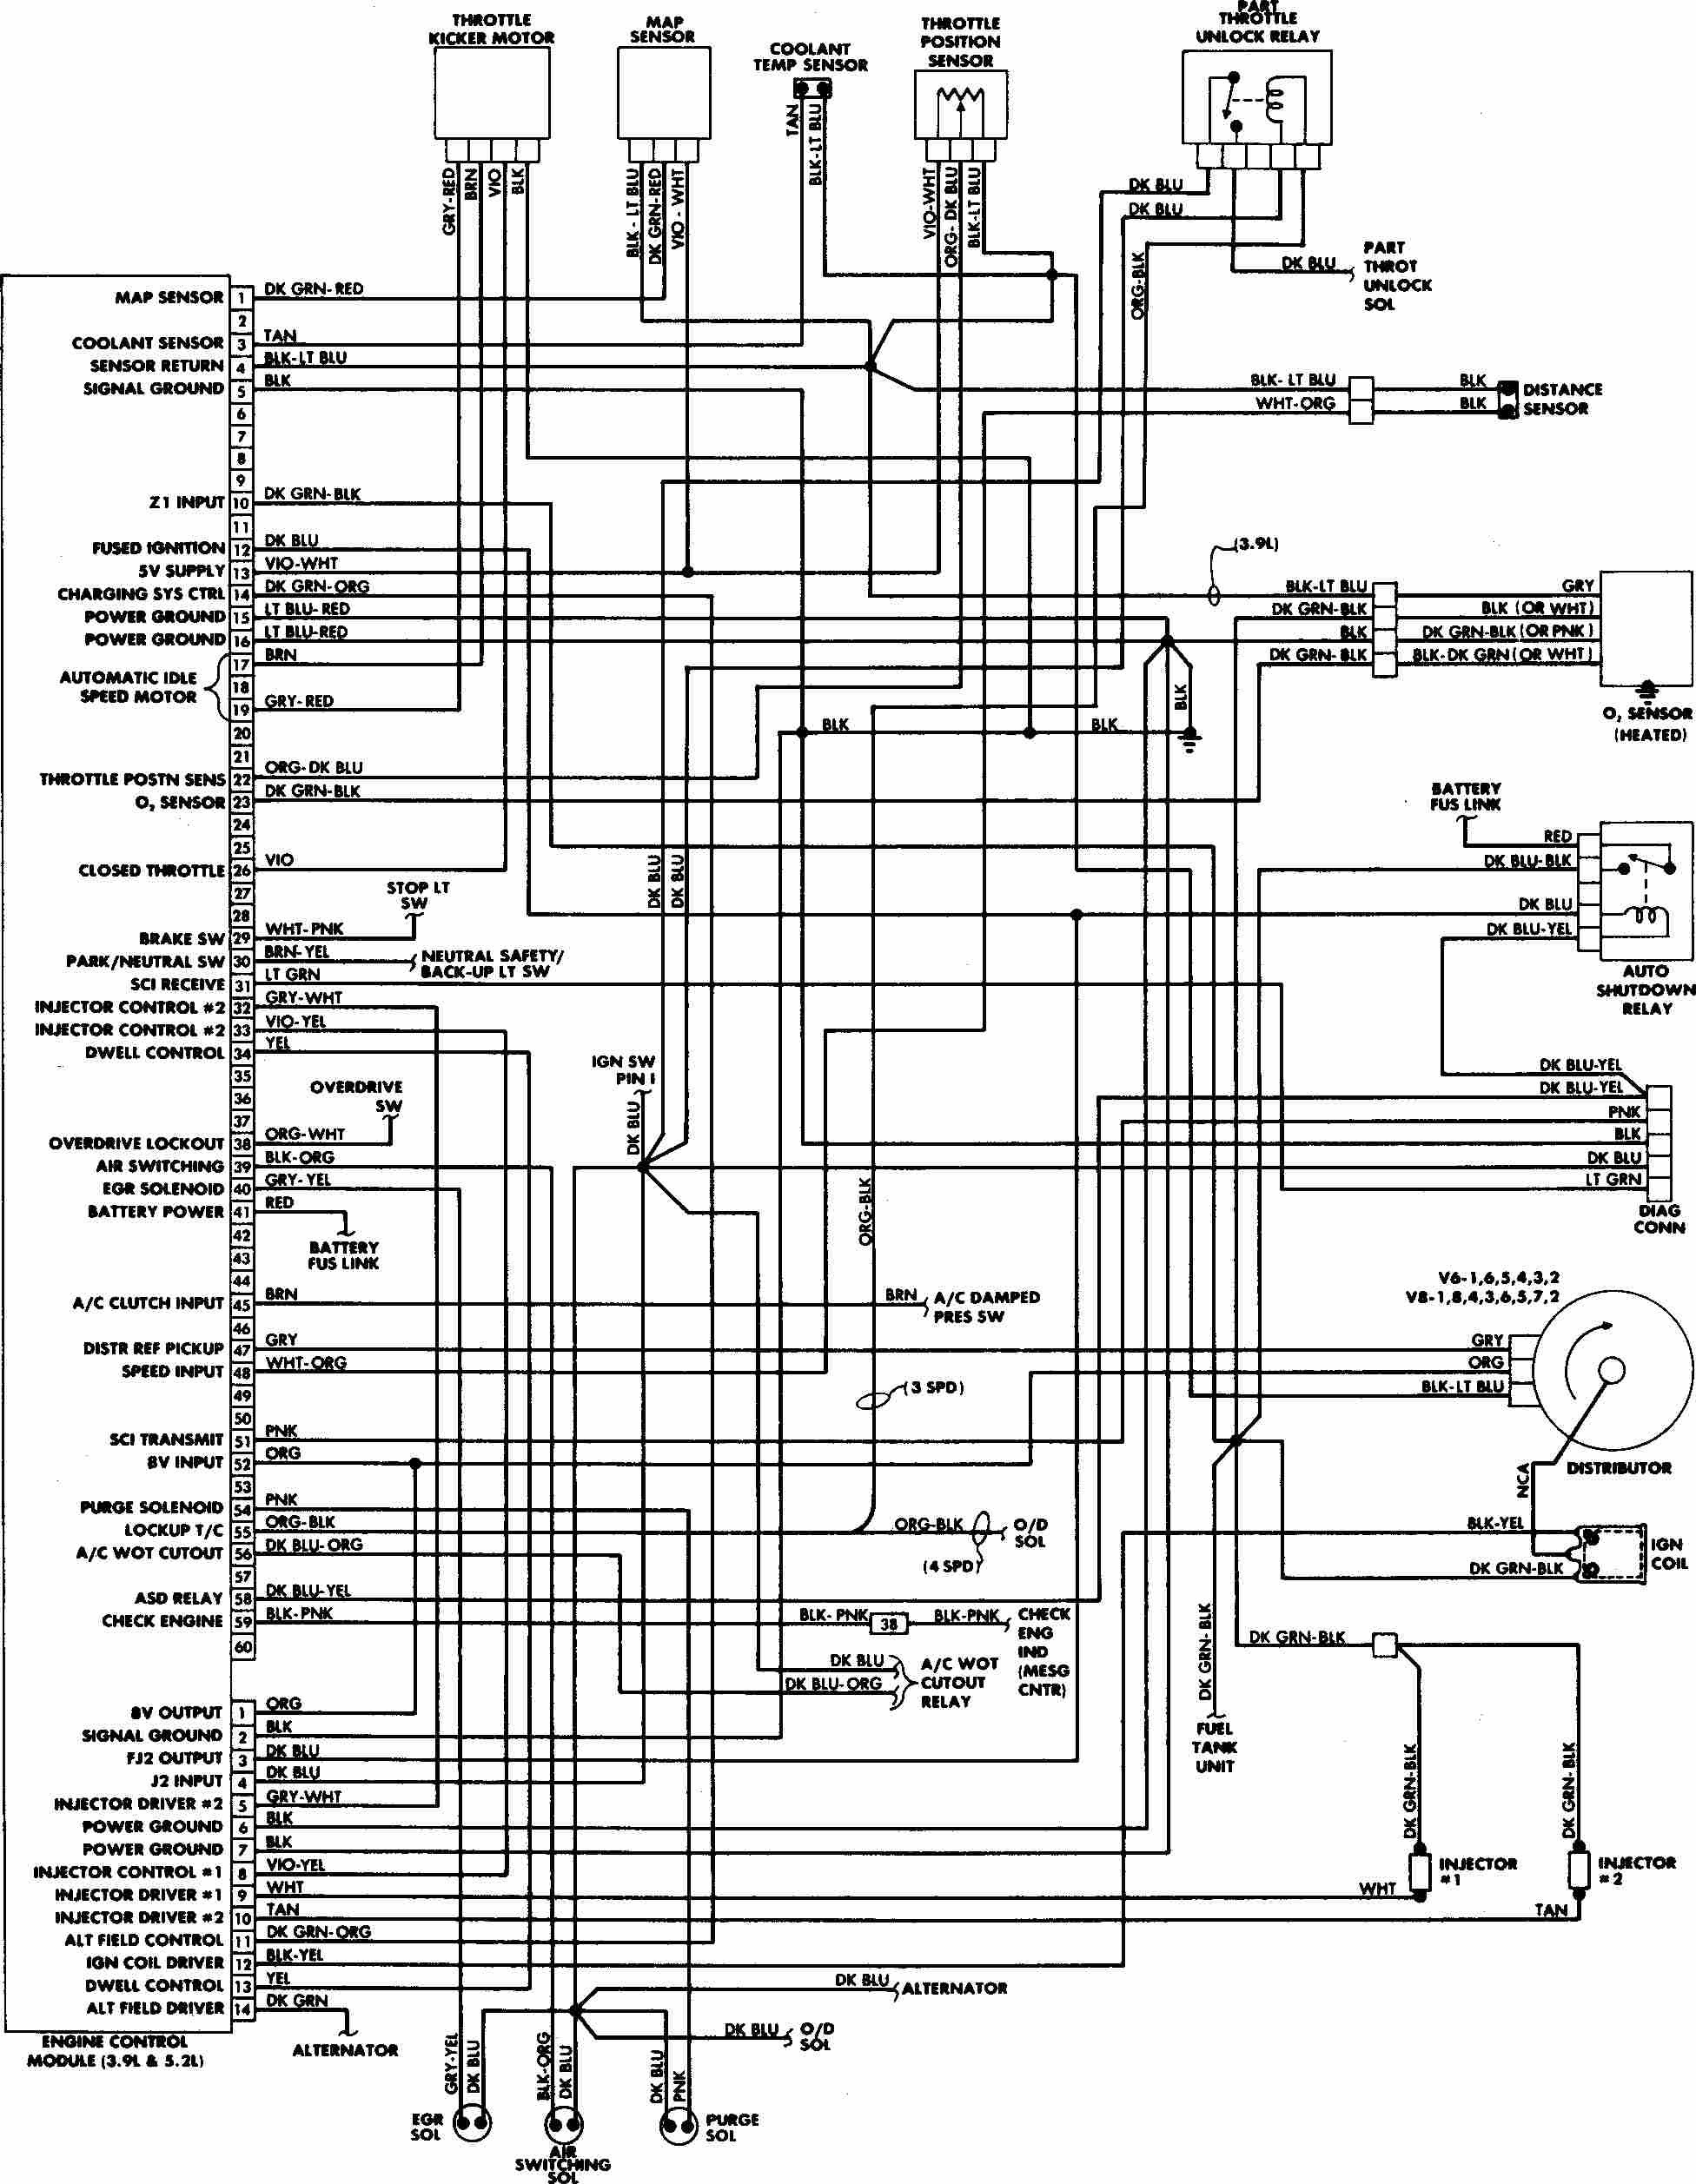 1991 jeep cherokee brake light wiring diagram john deere 445 wrangler fuse box auto